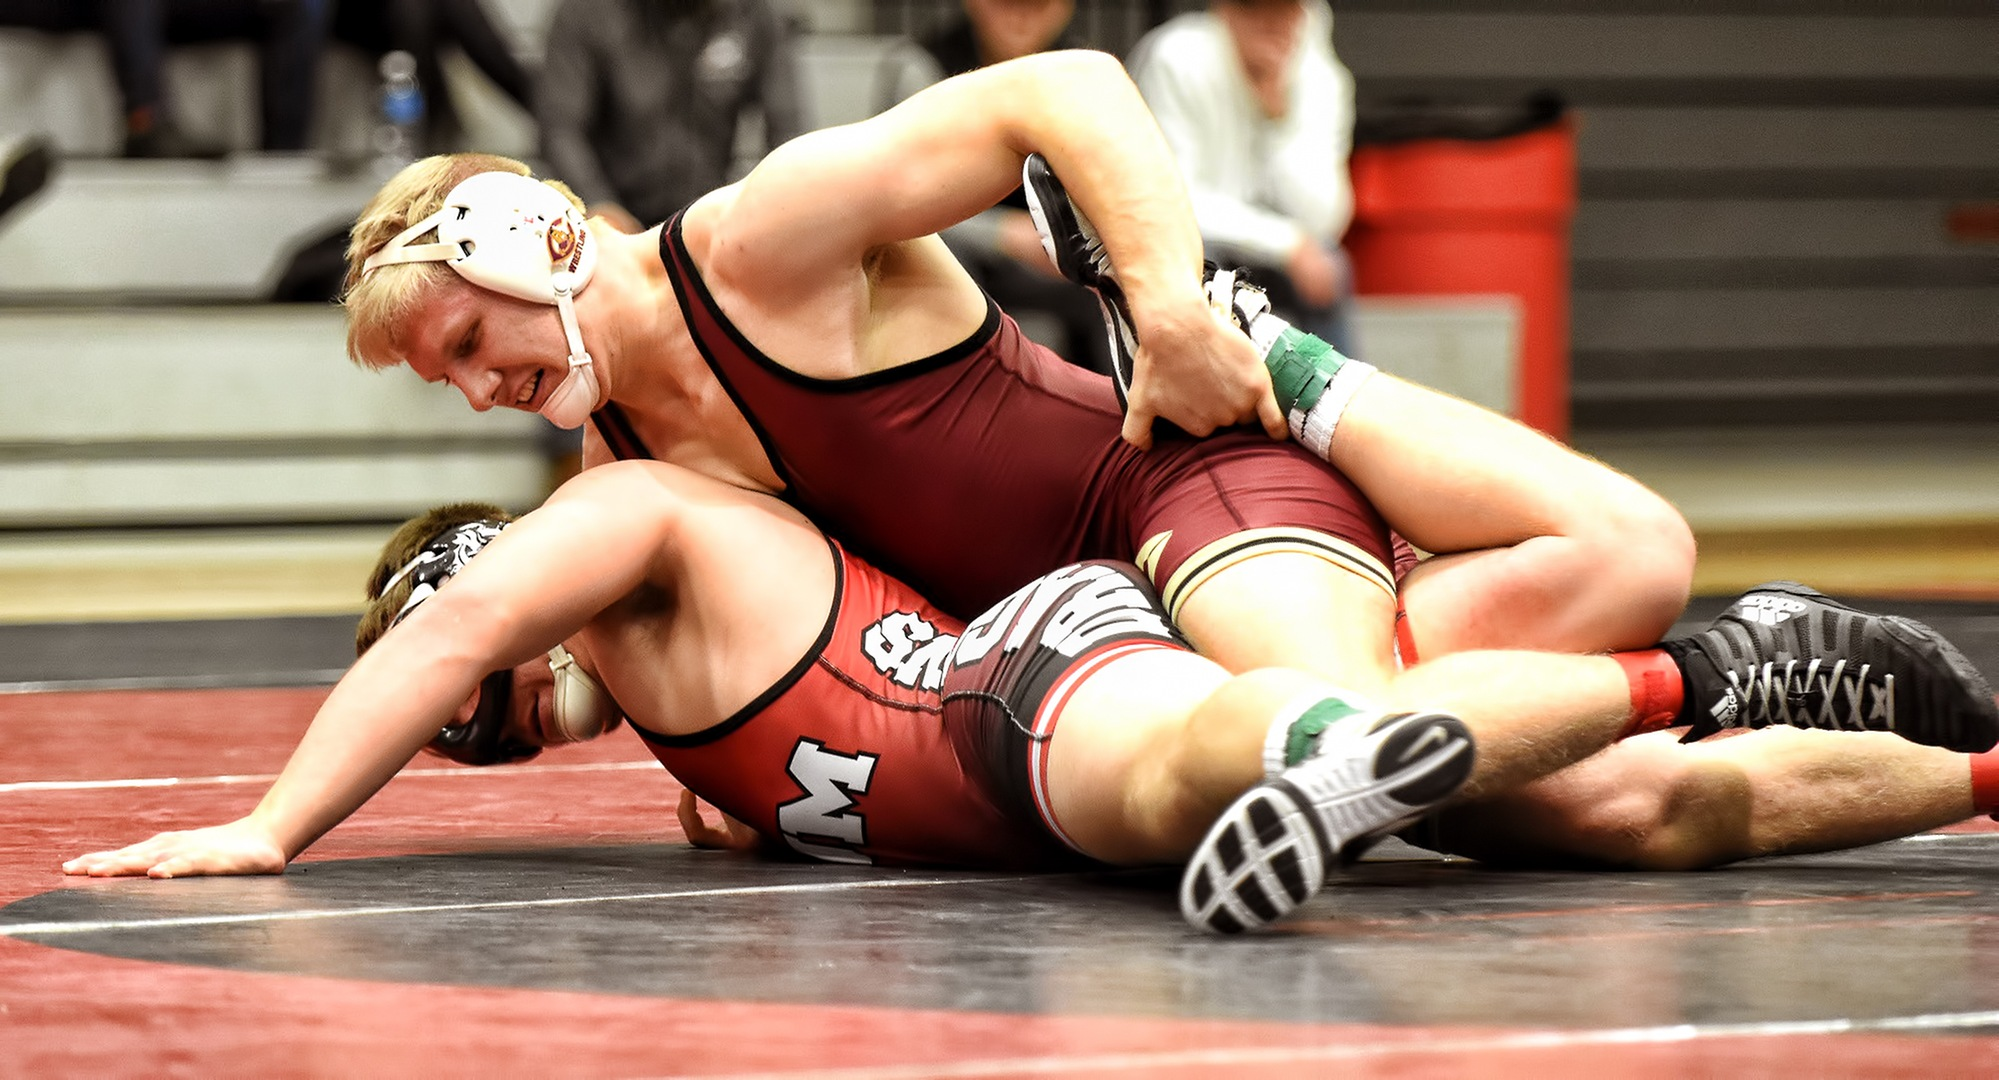 Freshman Gabe Zierden was one of two Cobber wrestlers to advance to the semifinals at the NCAA Upper Midwest Region Meet.